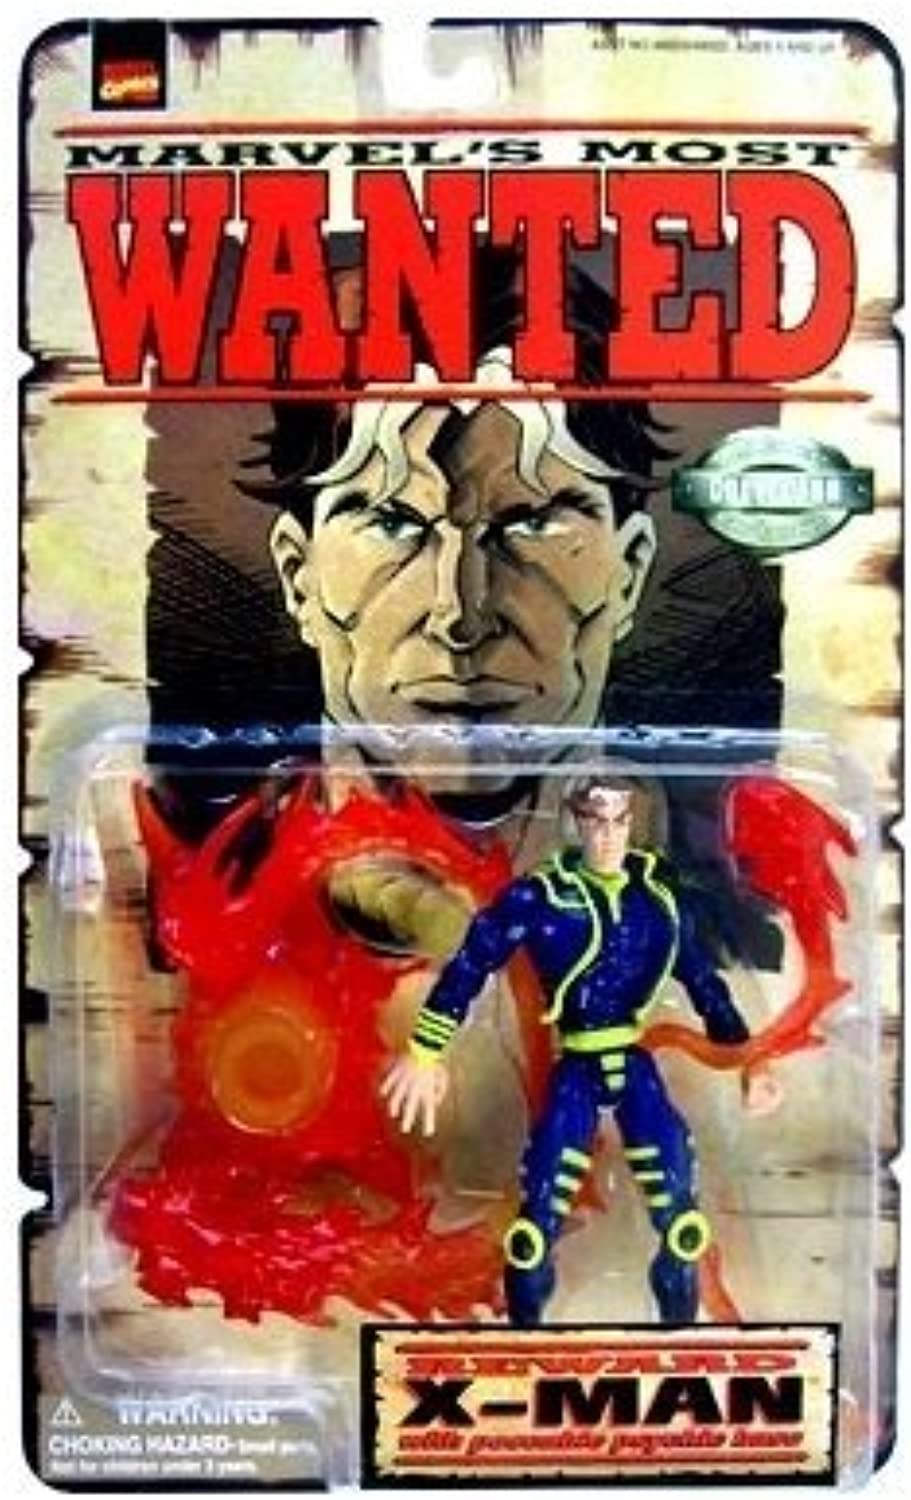 Marvels Most Wanted   XMan Action Figure by X Men